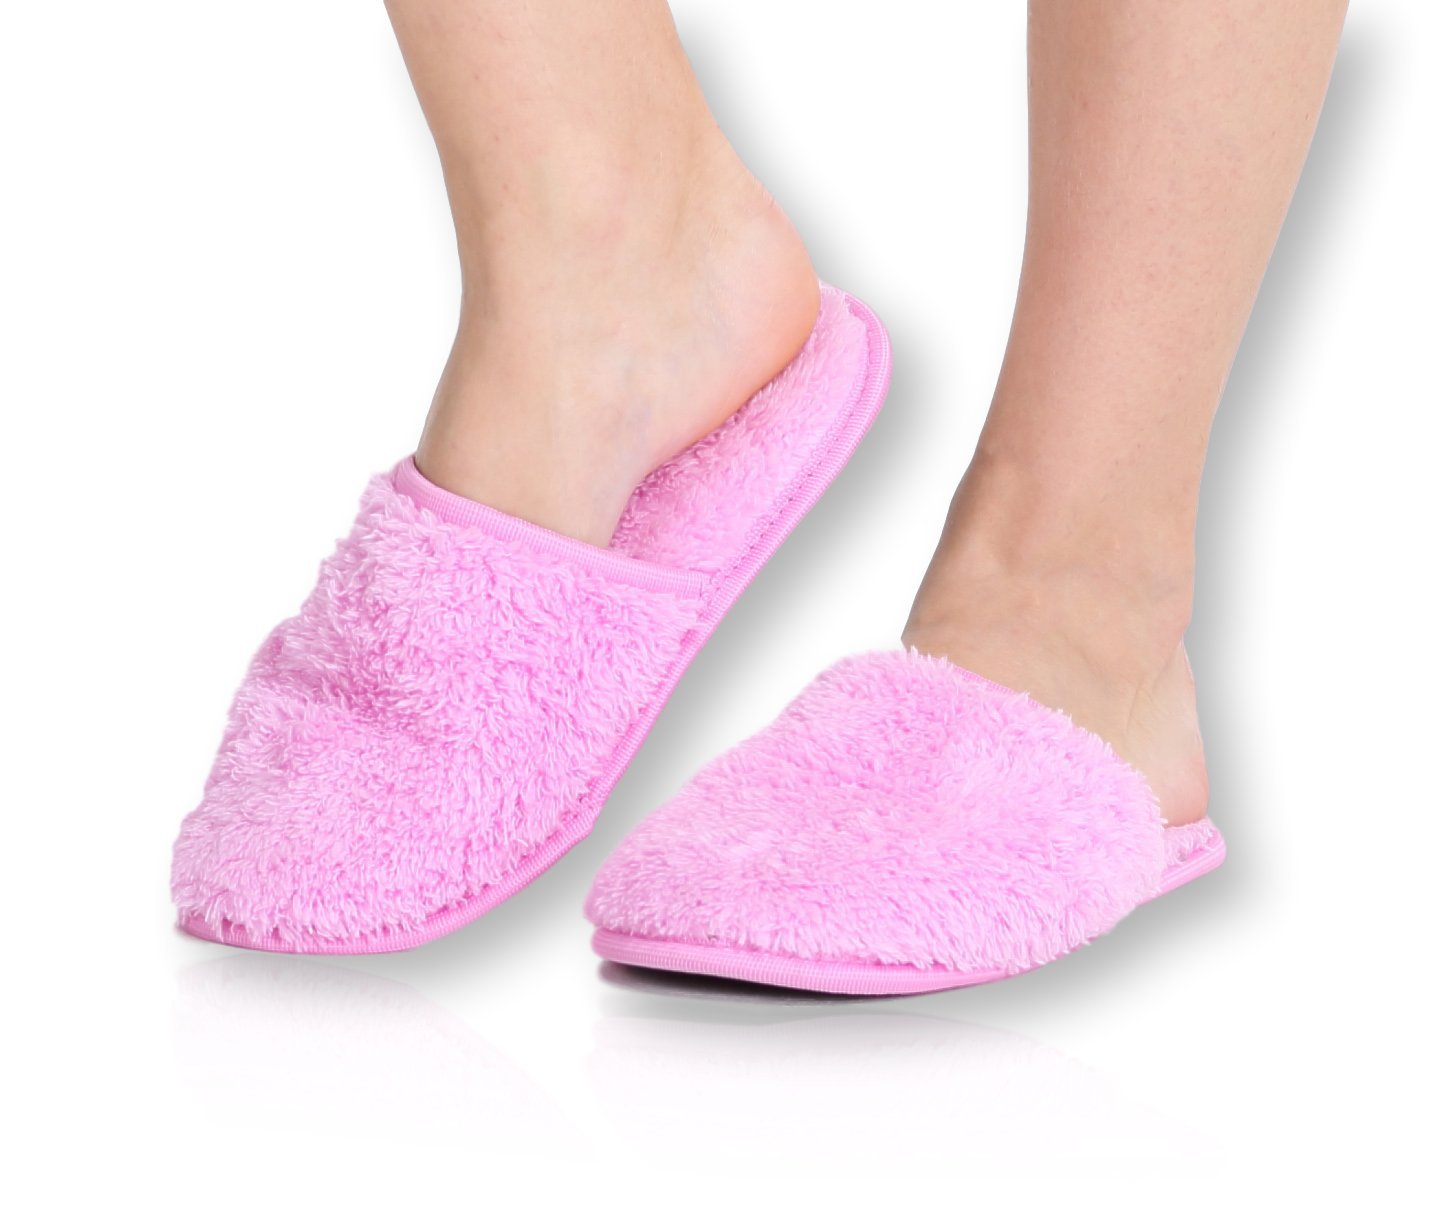 Pembrook Ladies Slippers With Memory Foam – Pink - S/M (6-8.5) – Fuzzy Soft Coral Fleece With Non Skid Sole – Great Plush Slip On House Slippers For Adults, Women, Girls